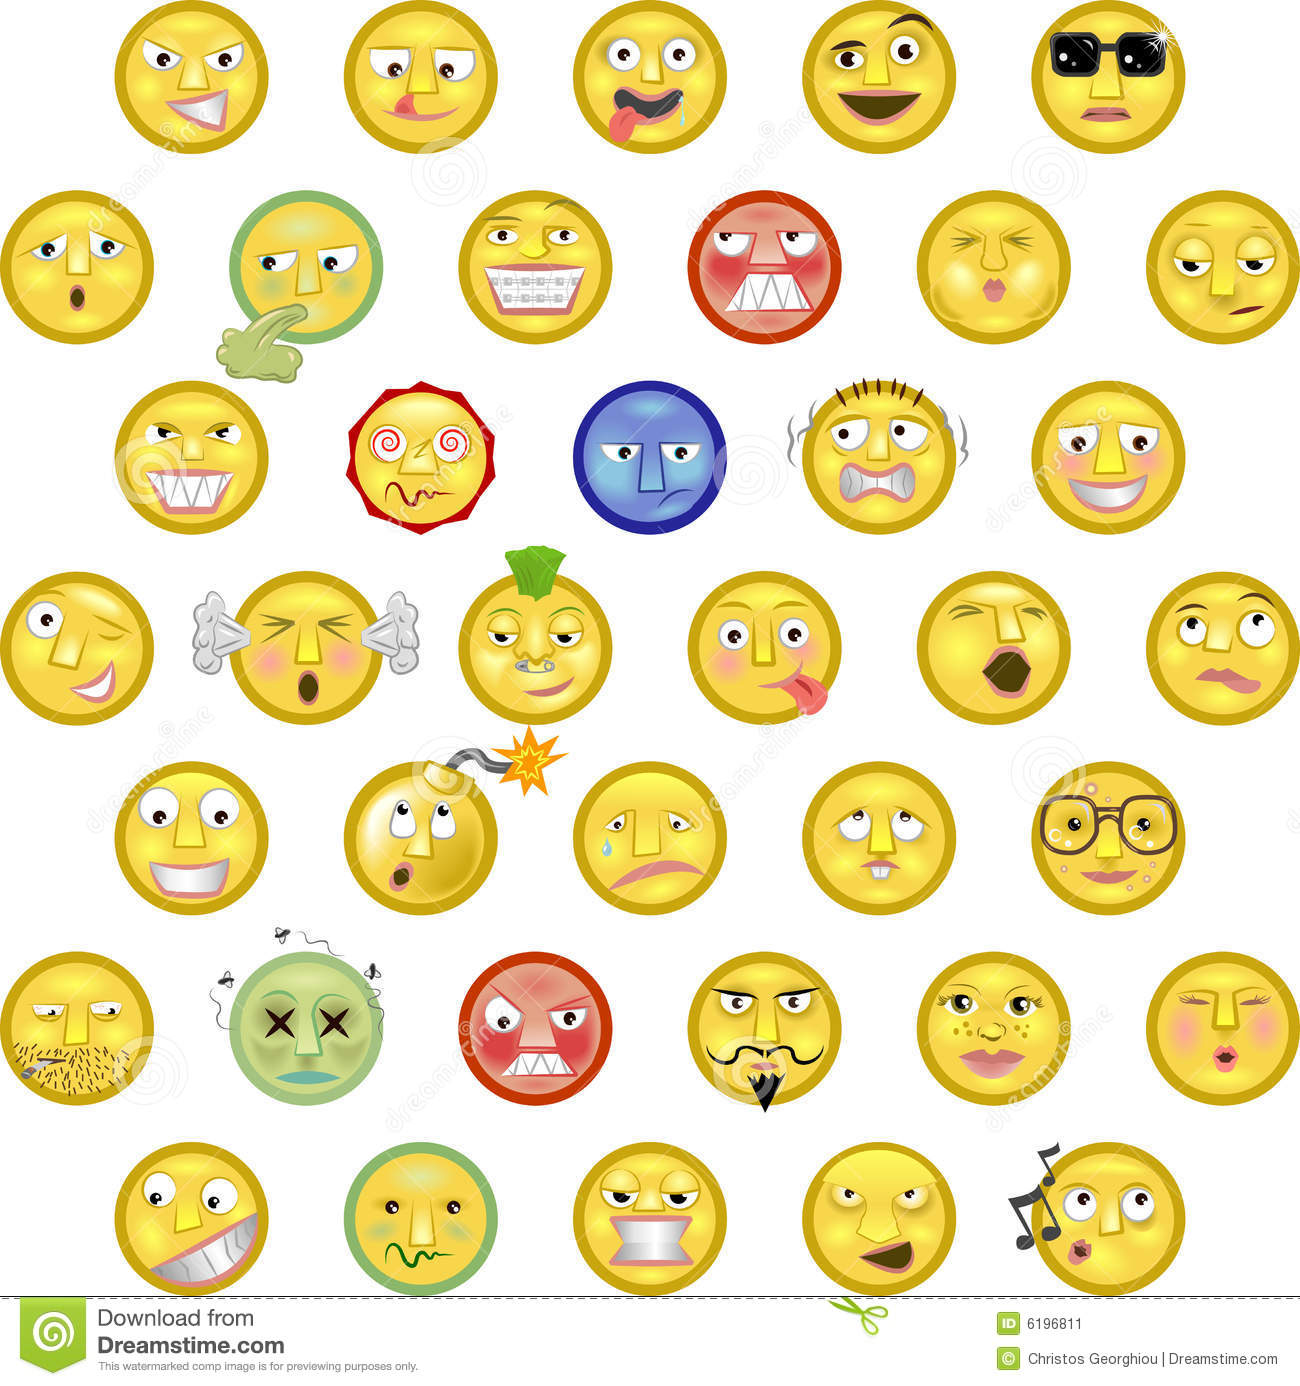 What is the full list of emoticons   Skype  Help for Skype